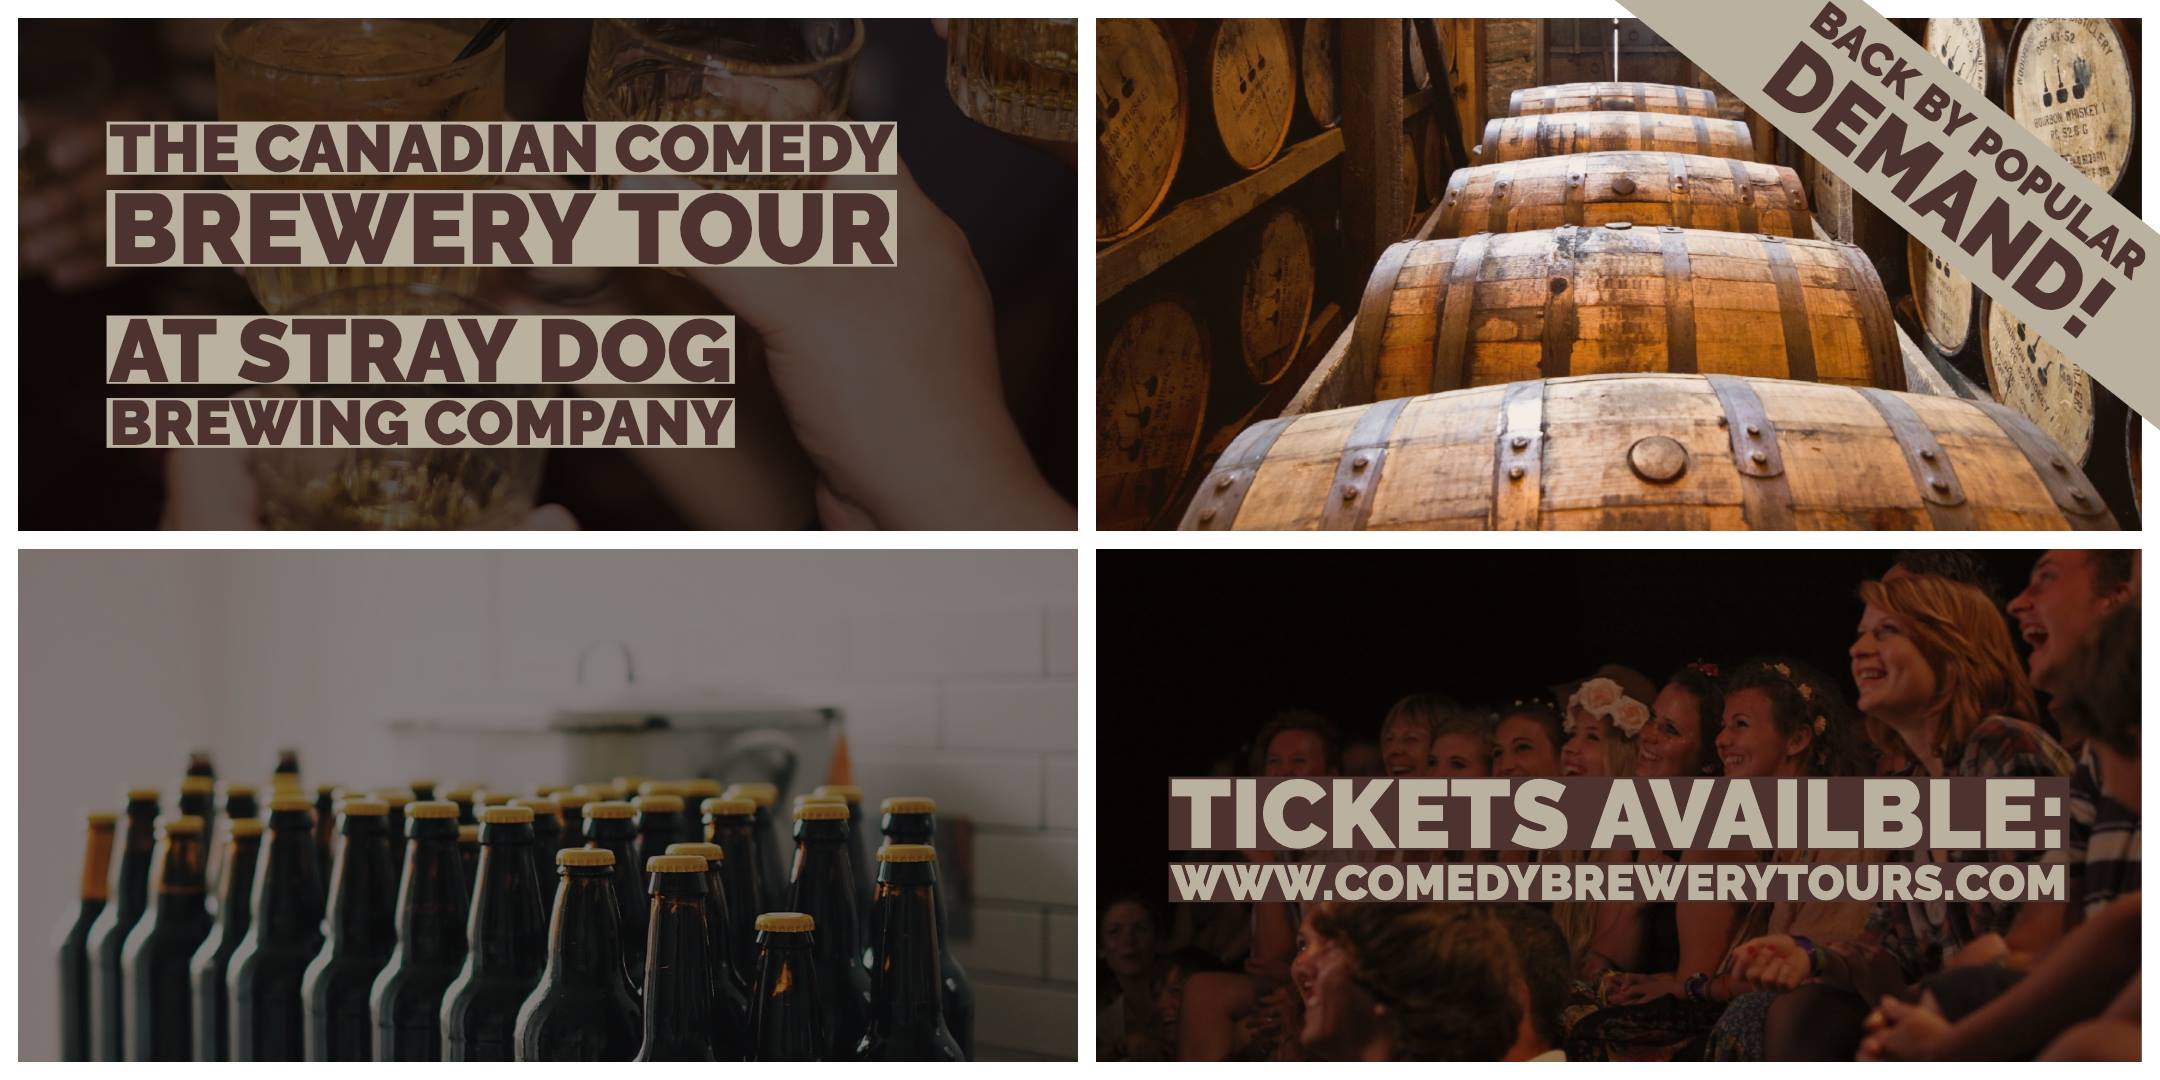 The Canadian Comedy Brewery Tour @ Stray Dog Brewing Company